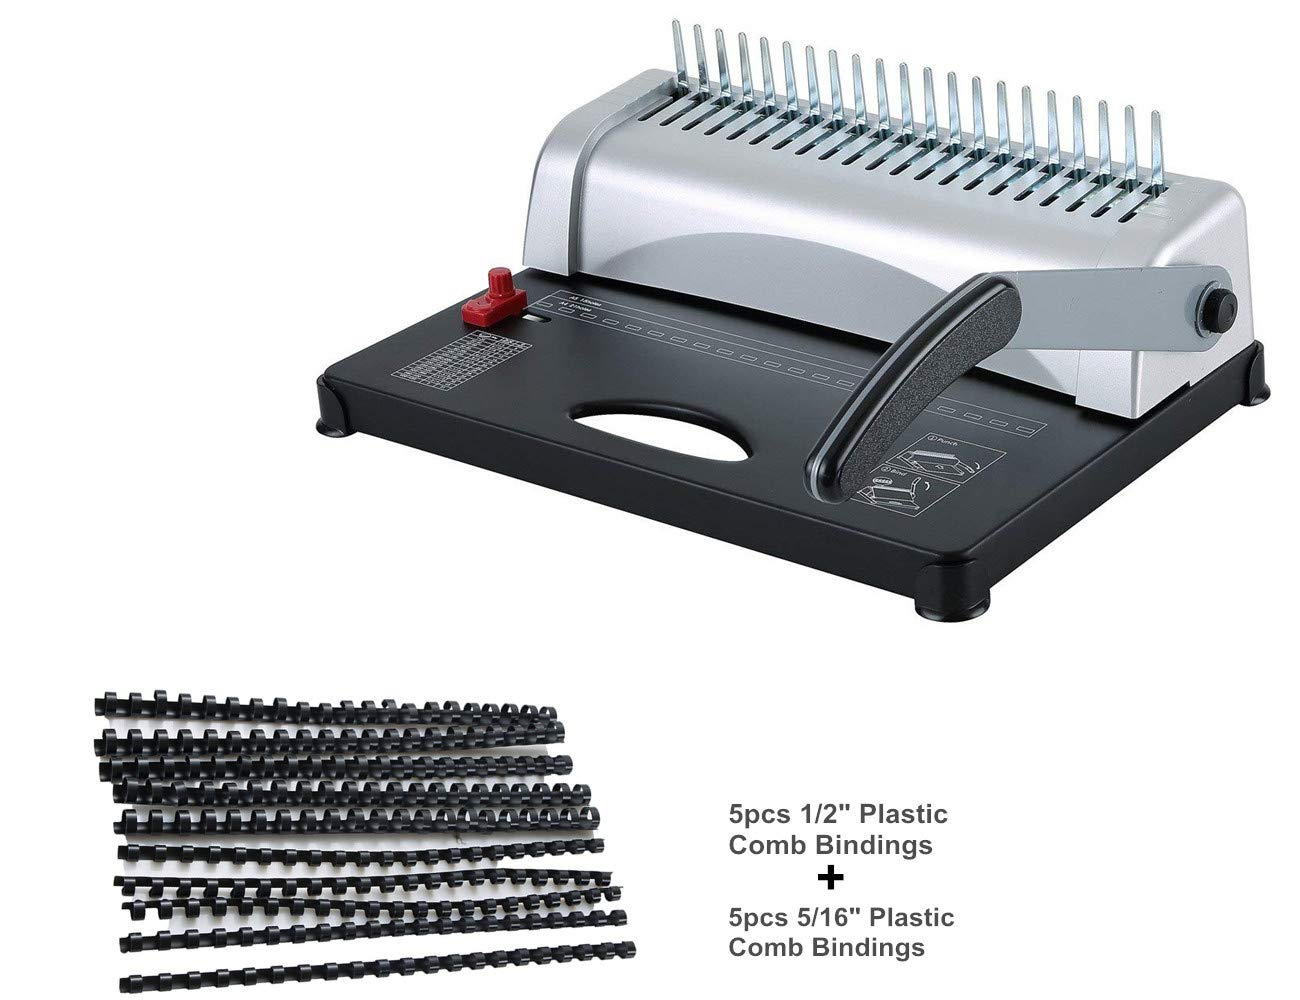 FLK Tech Binding Machine with Starter Combs Set - 21 Hole / 450 Sheets Paper Punch Binder